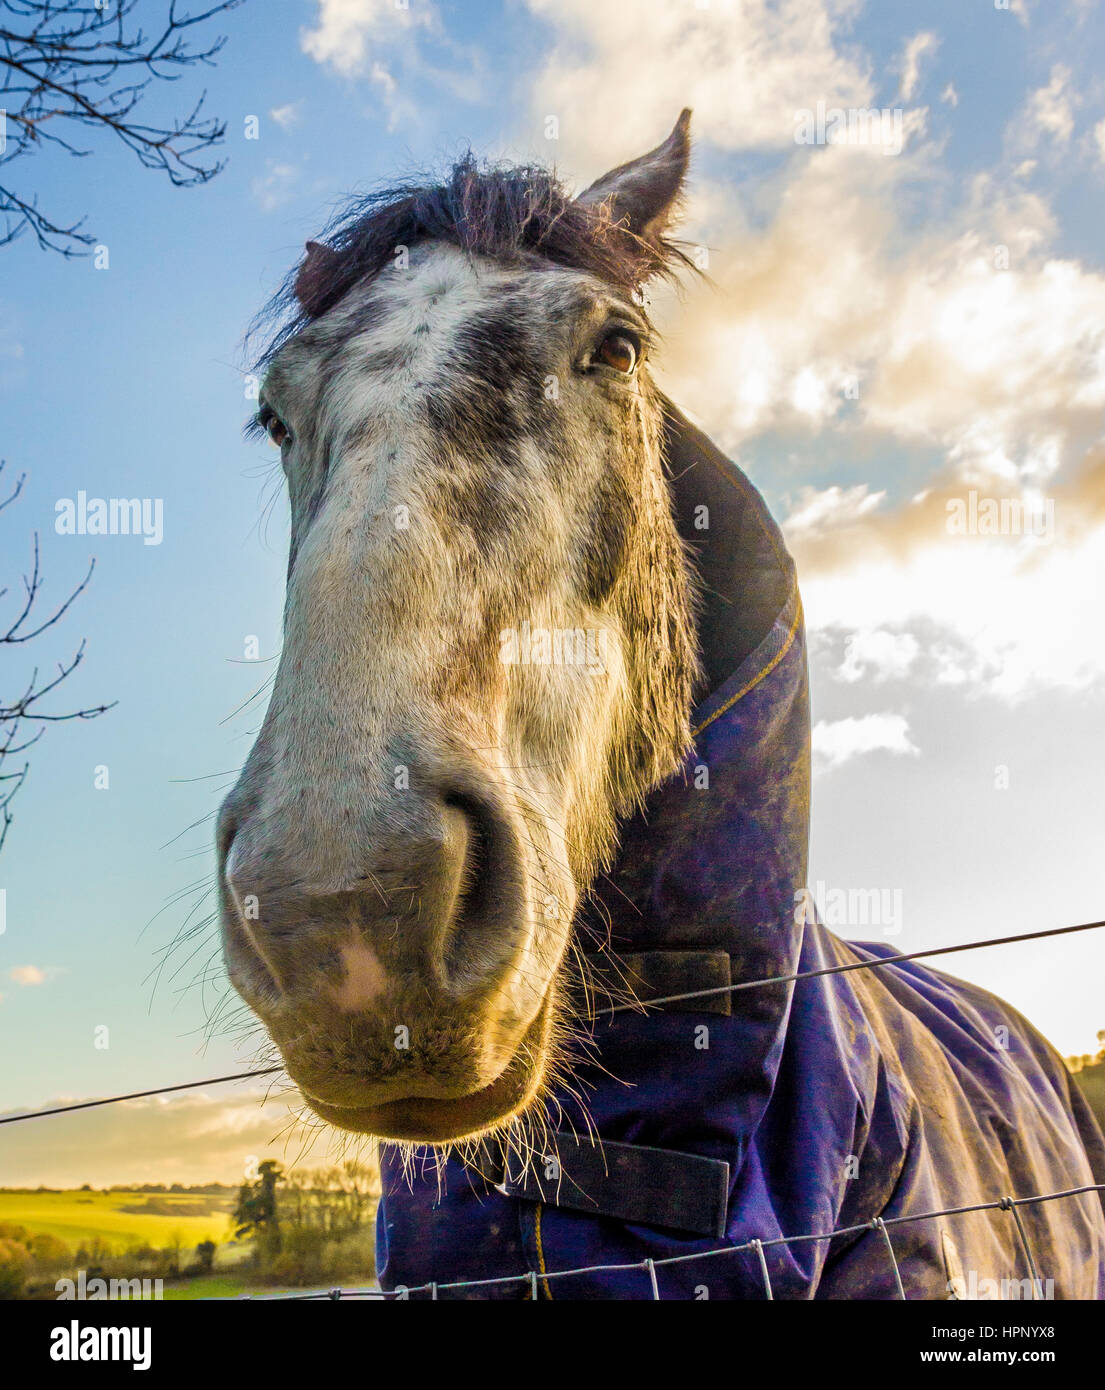 Horses looking down the lens - Stock Image